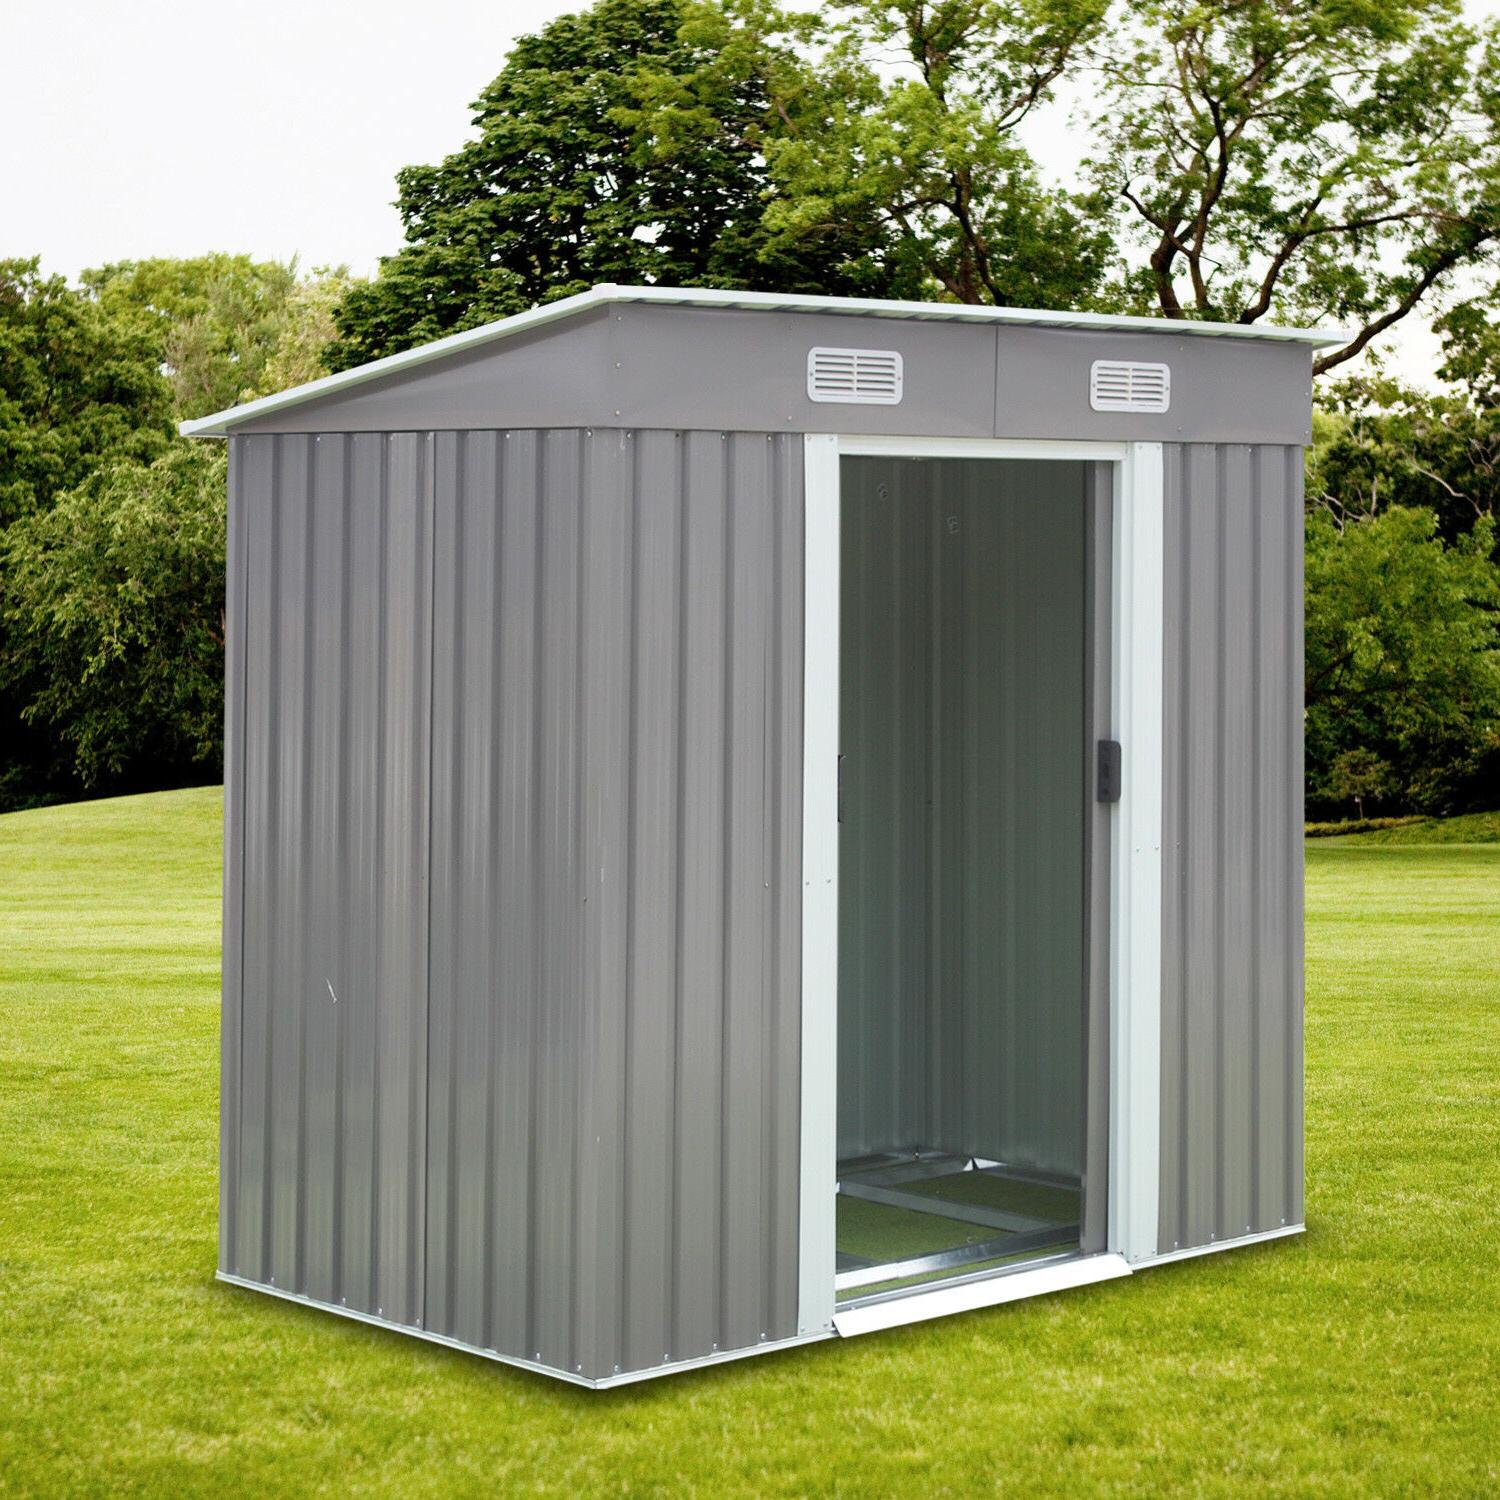 6' x Storage Shed Steel Tool Lawn Gray